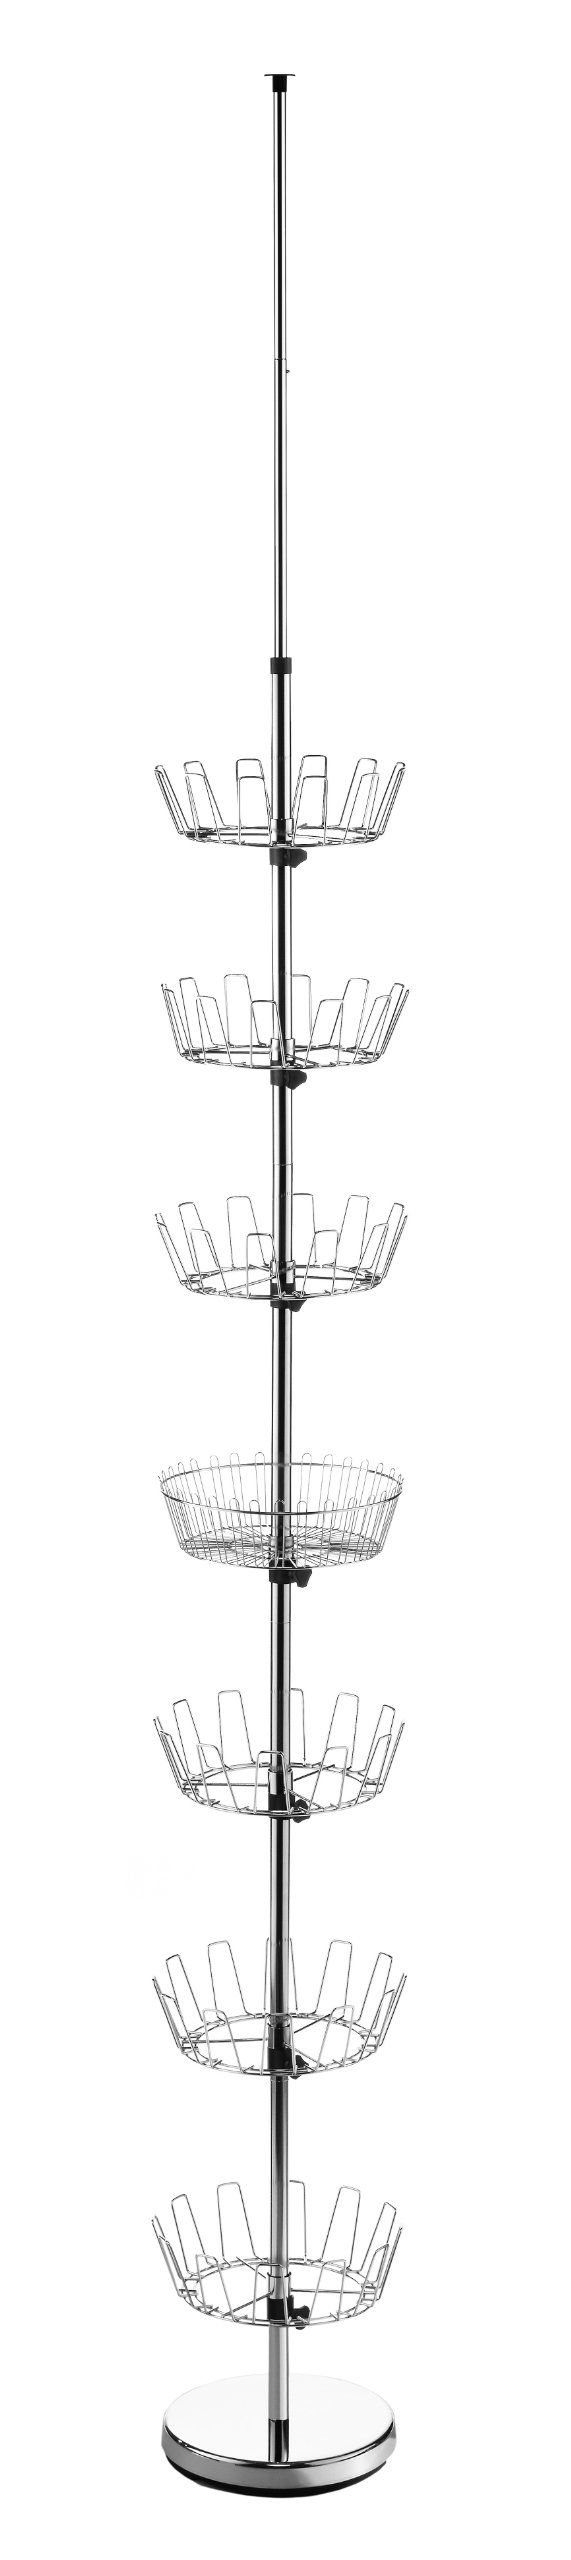 Whitmor 6 Tier Floor-To-Ceiling Shoe Spinner - Adjustable with Basket by Whitmor